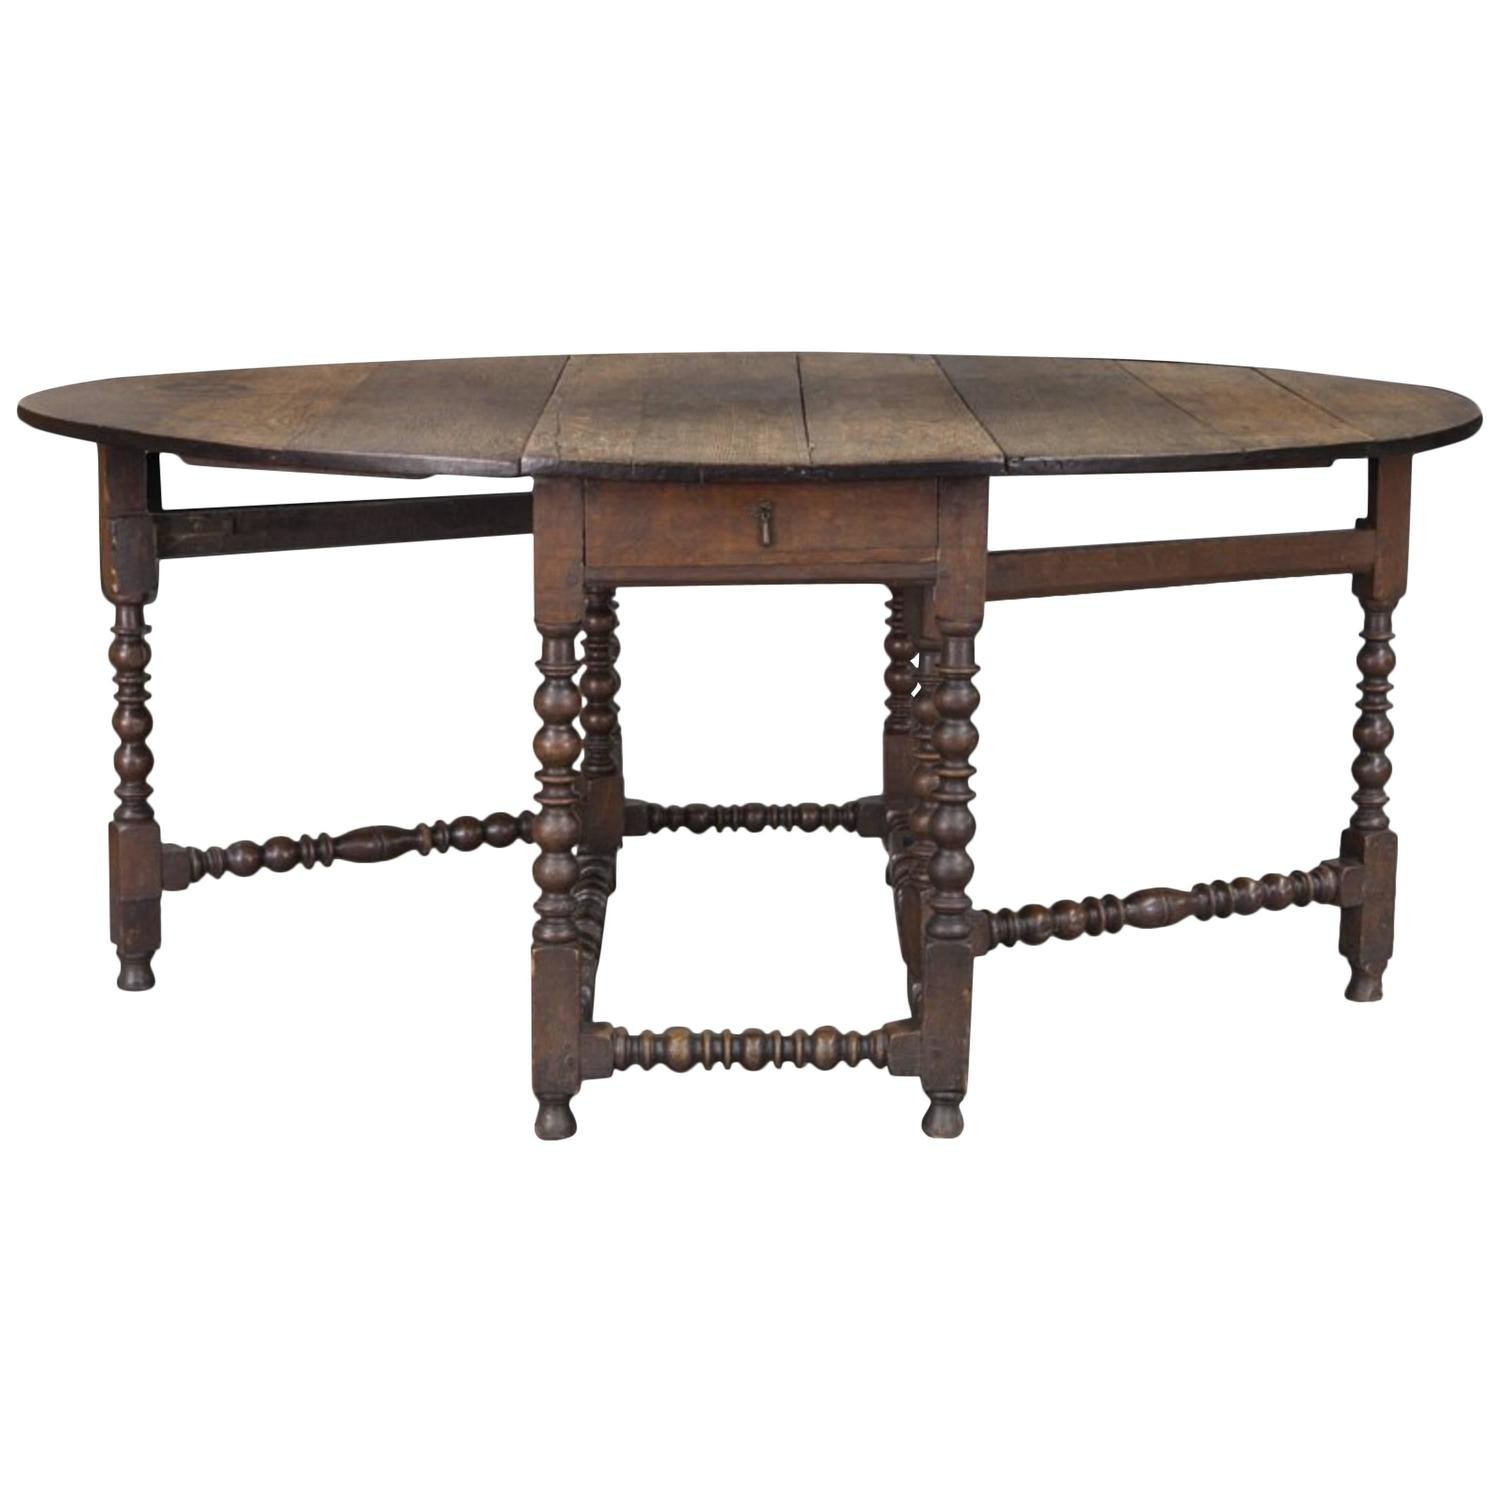 Large 18th Century English Oak Oval Gateleg Dining Table at 1stdibs